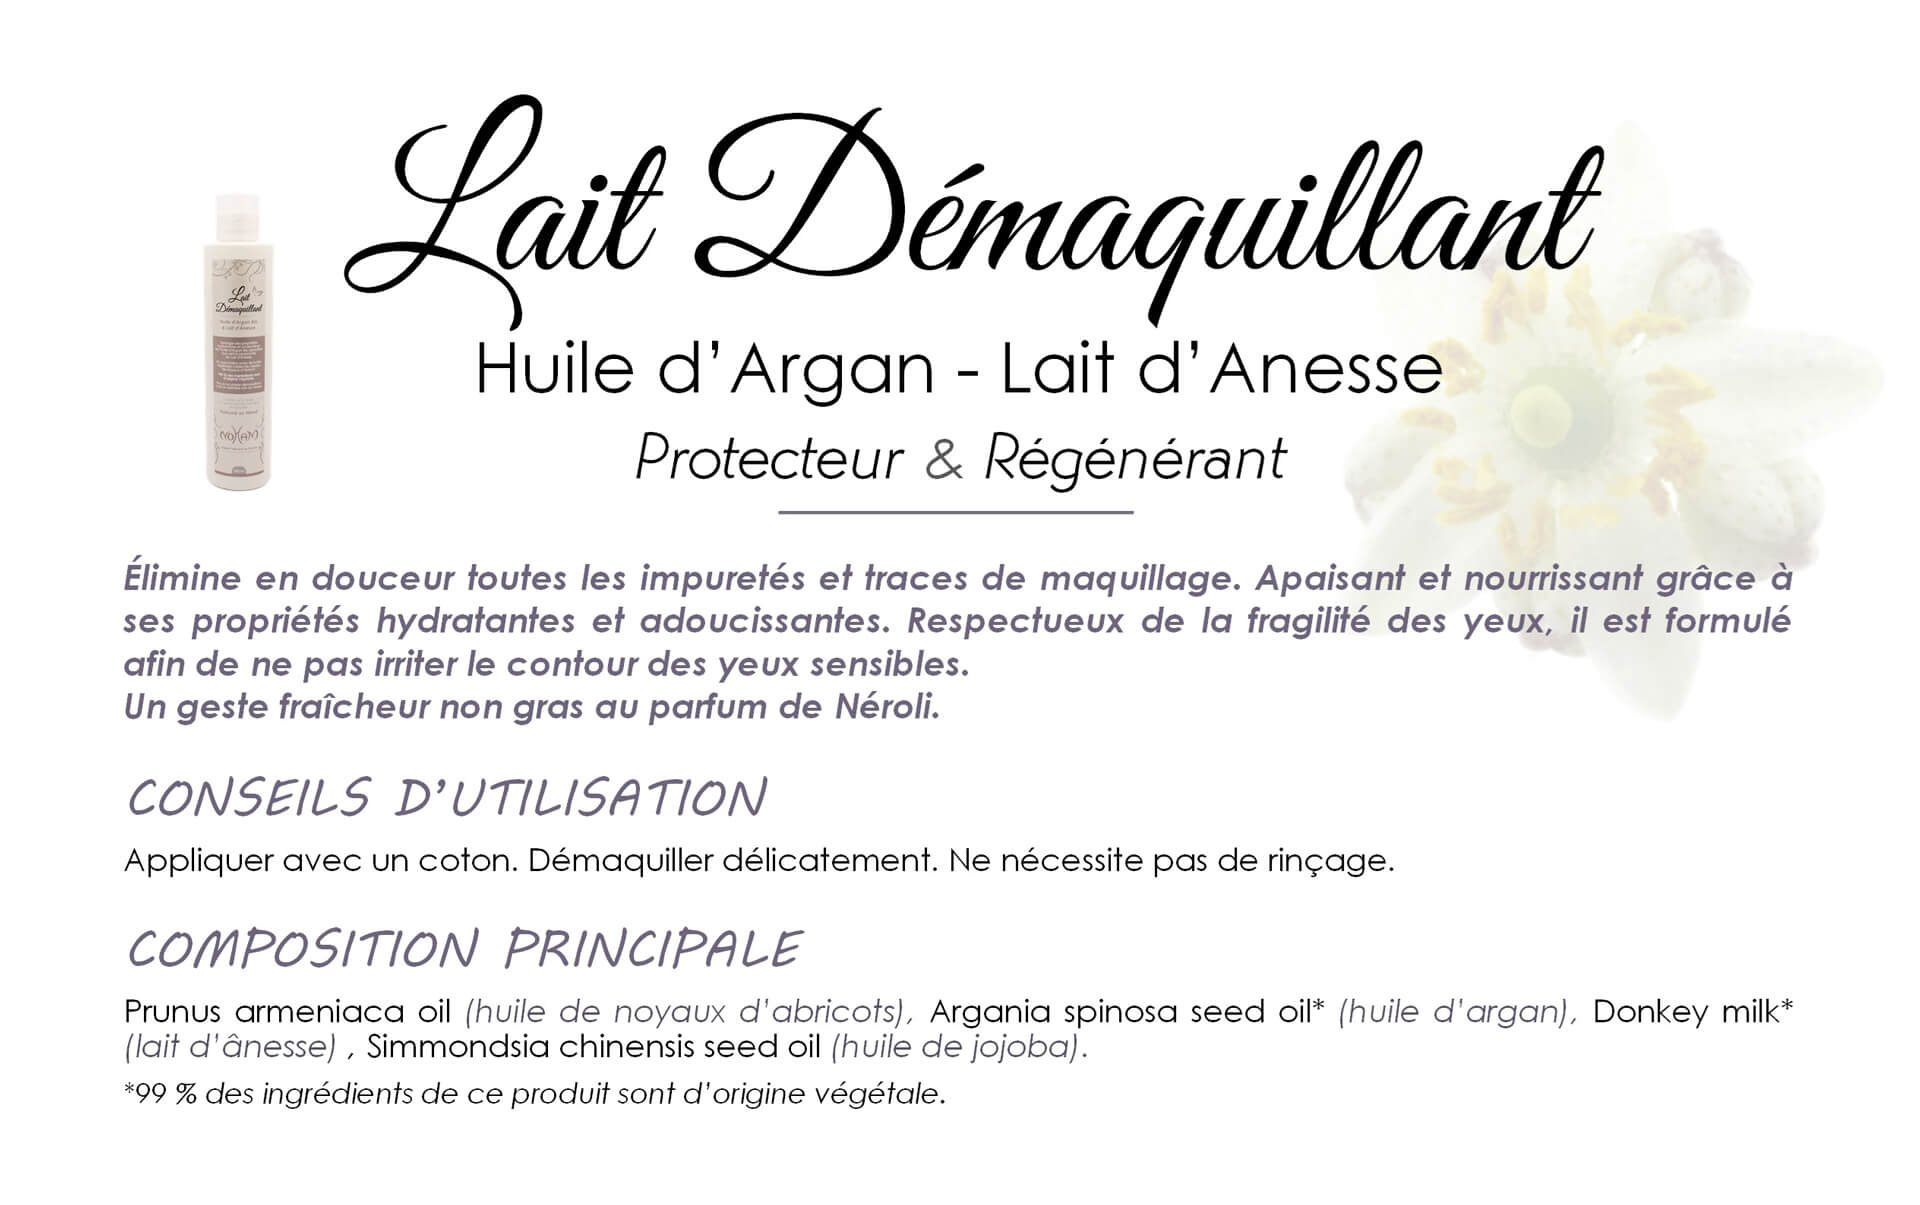 Lait Démaquillant - Exfoliant description 1